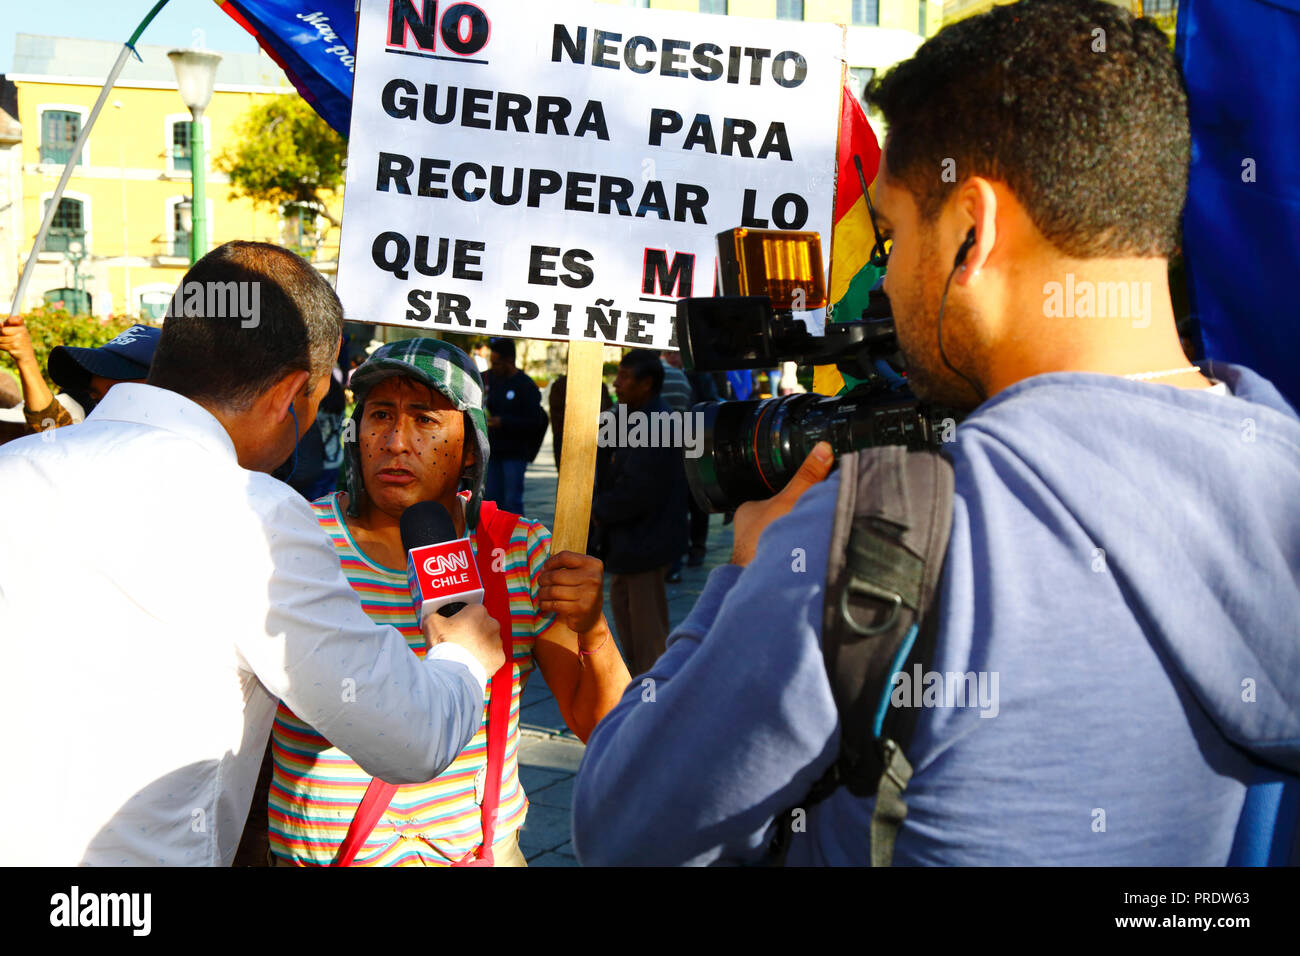 La Paz, Bolivia, 1st October 2018. A man dressed up as the famous Mexican TV character El Chavo from the sitcom El Chavo del Ocho speaks to a CNN Chile reporter before the reading of the ruling for the case 'Obligation to Negotiate Access to the Pacific Ocean (Bolivia v. Chile)' at the International Court of Justice in The Hague. Bolivia presented the case to the ICJ in 2013; Bolivia lost its coastal Litoral province to Chile during the War of the Pacific in the 19th century and previous negotiations have made no progress from Bolivia's viewpoint. Credit: James Brunker/Alamy Live News - Stock Image